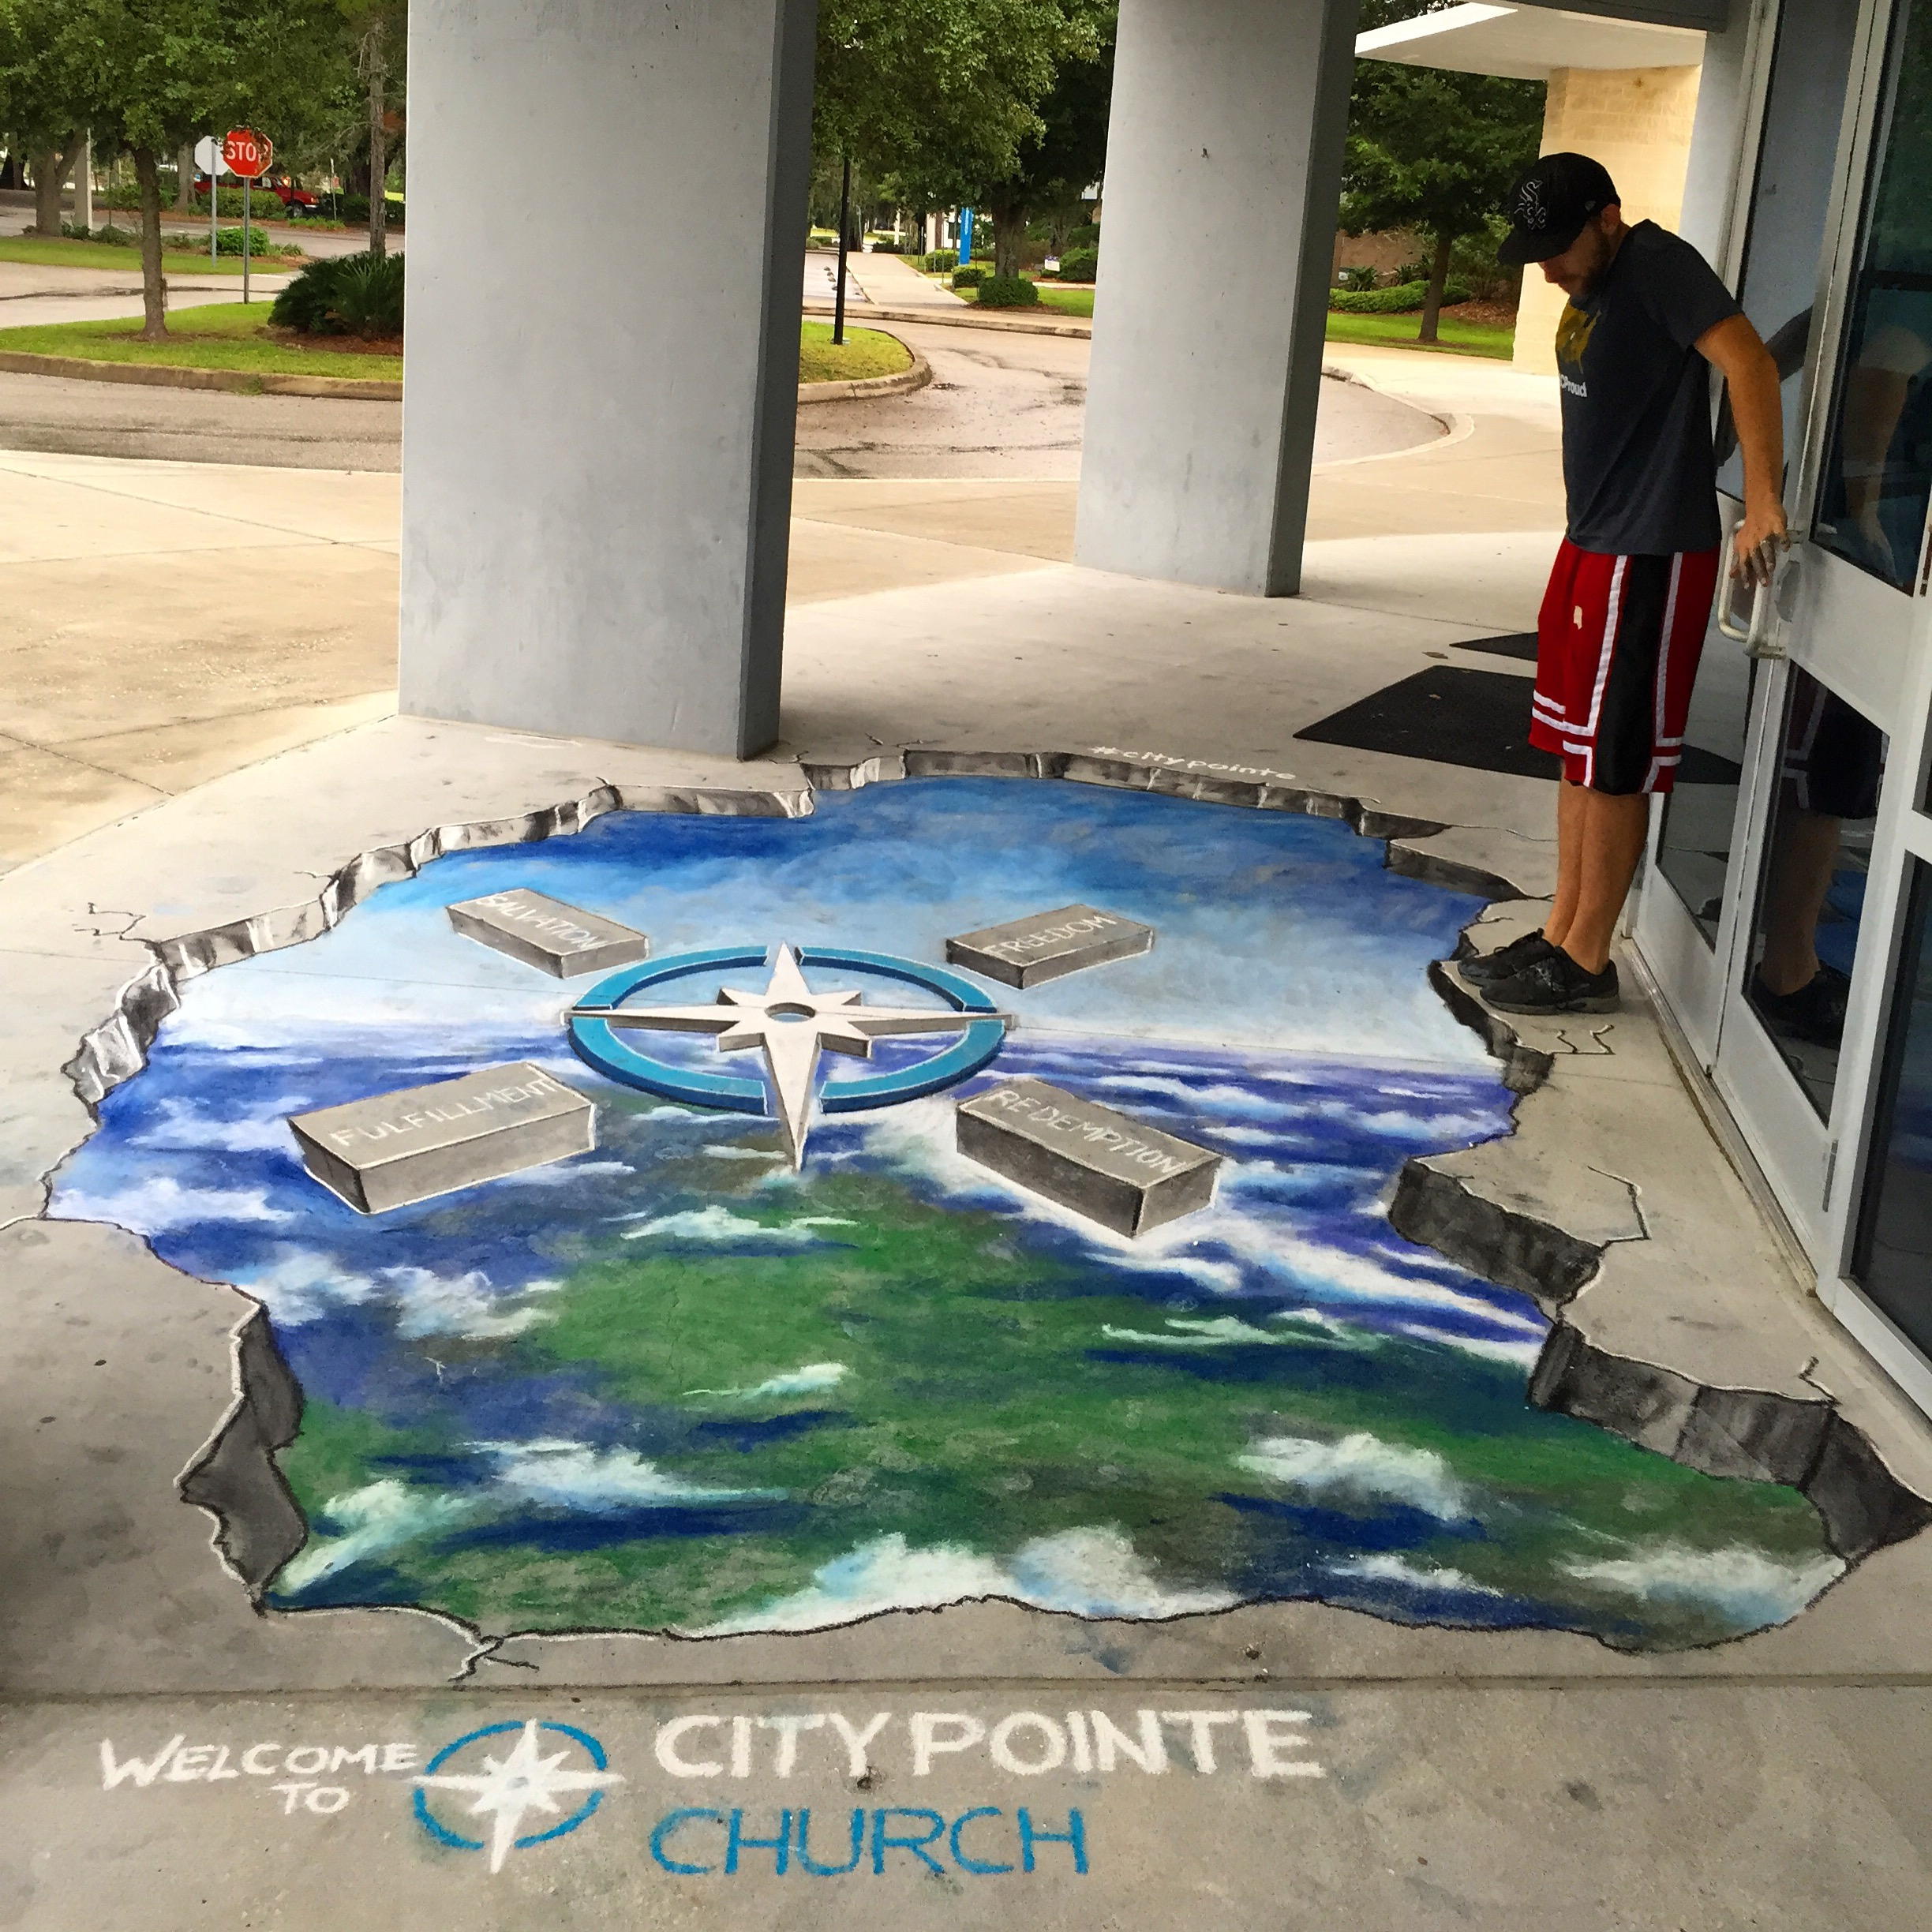 3D Chalk Advertisement: City Pointe Church